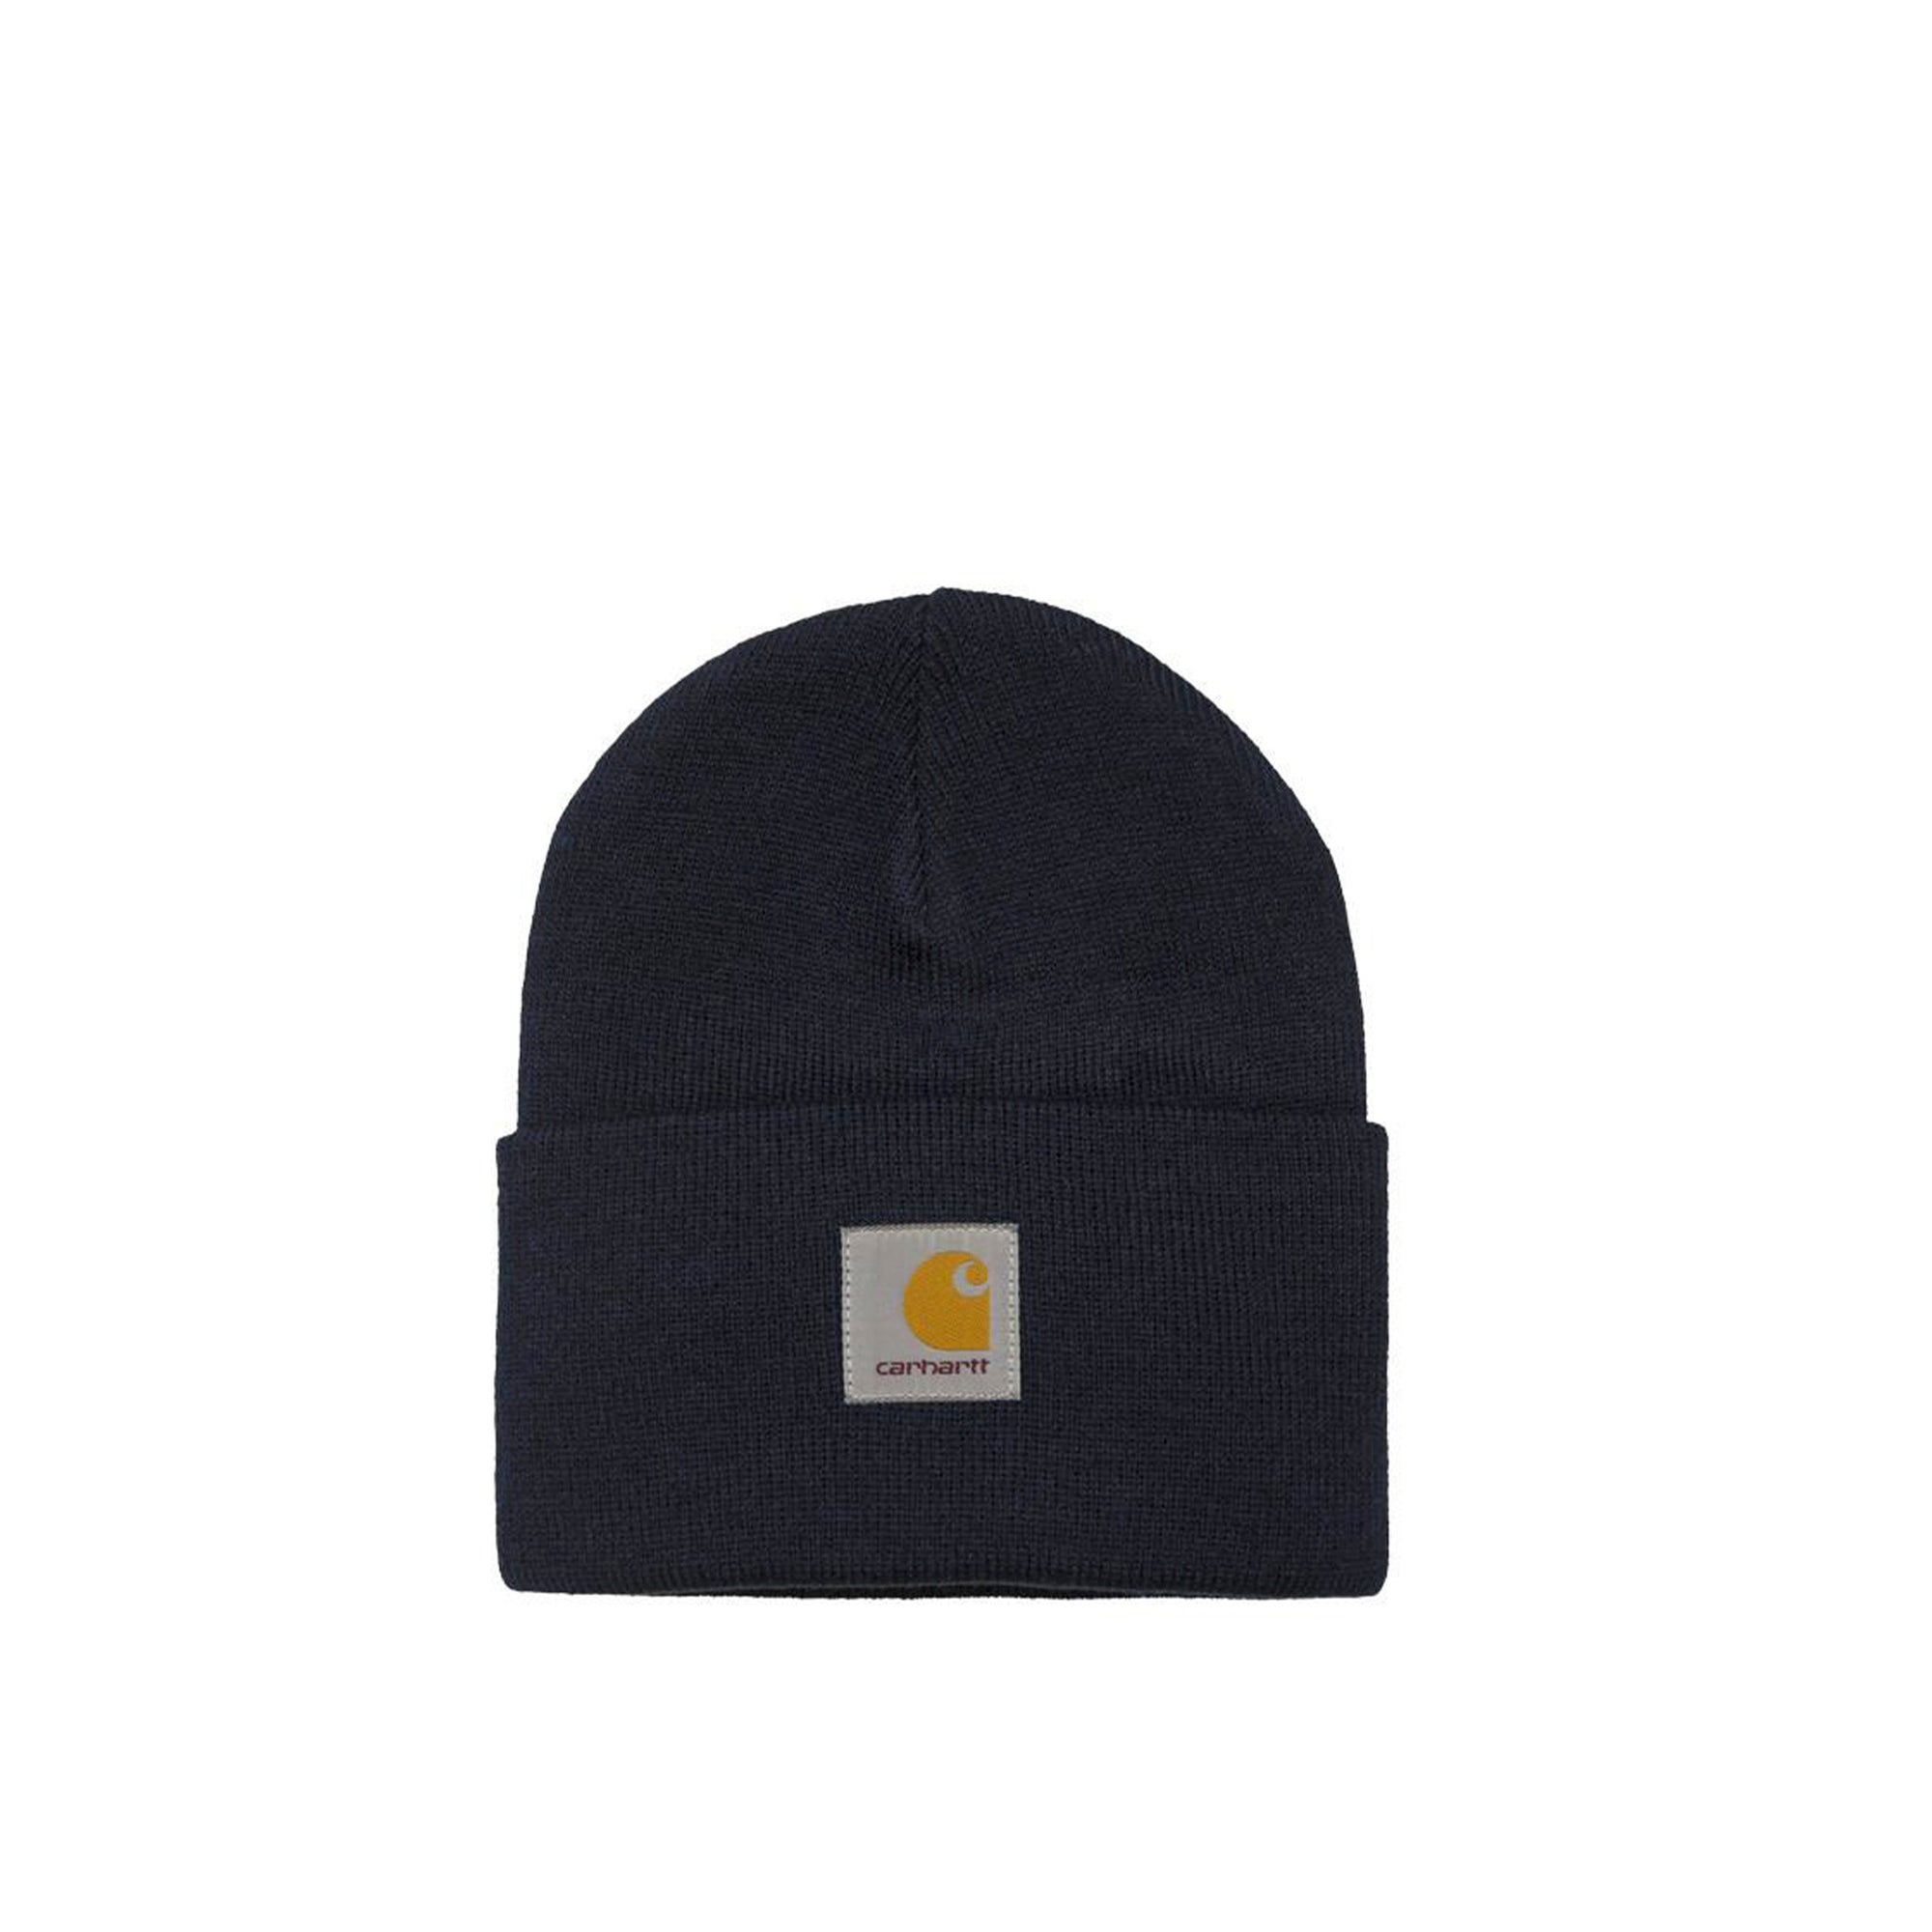 Carhartt WIP Acrylic Watch Hat: Dark Navy - The Union Project